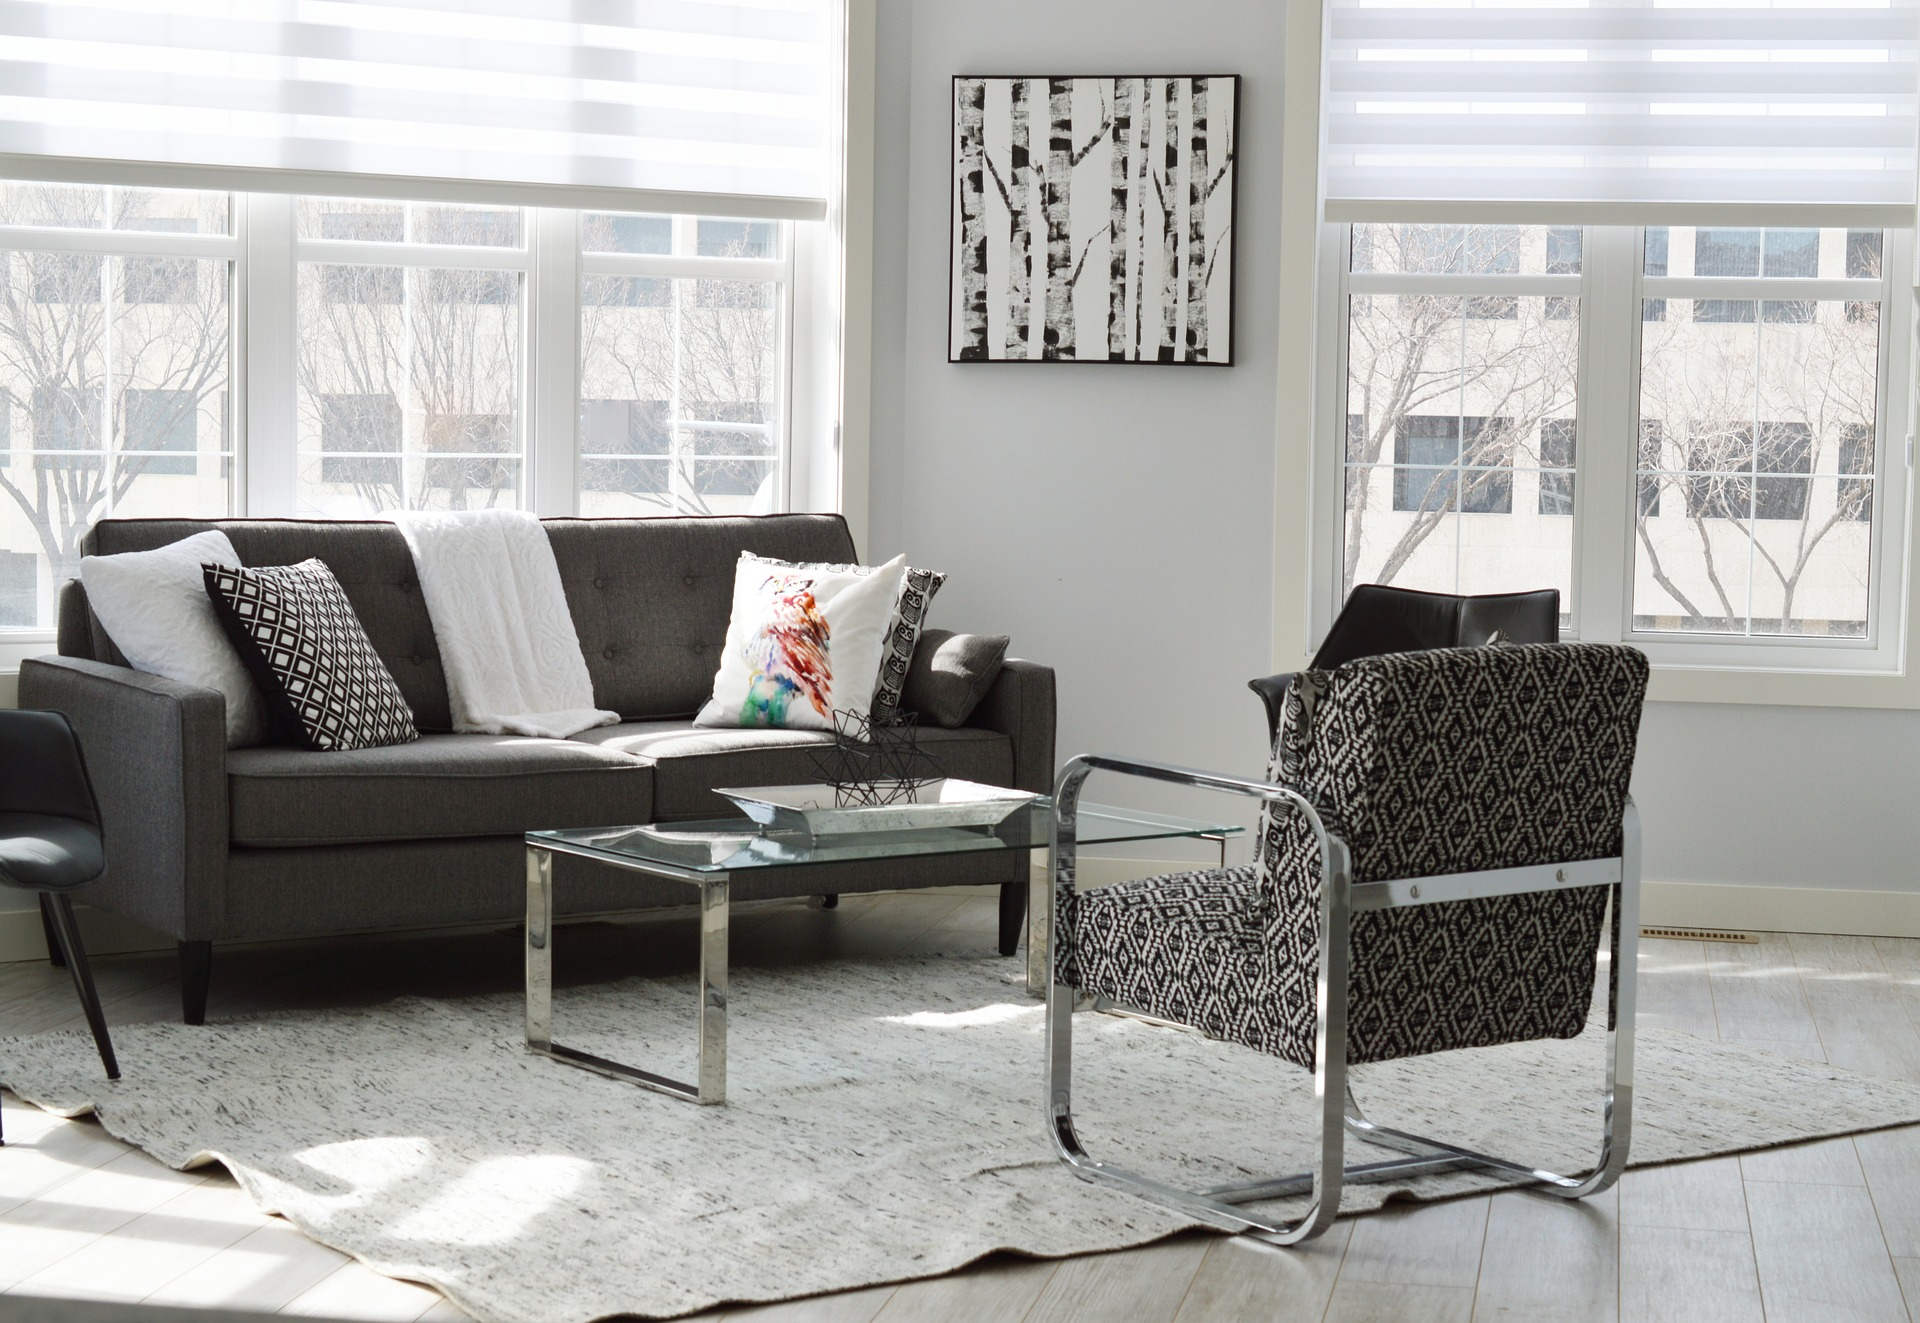 Modern living room sofas and table - One of 10 Unique Modern DIY Home Decor Ideas